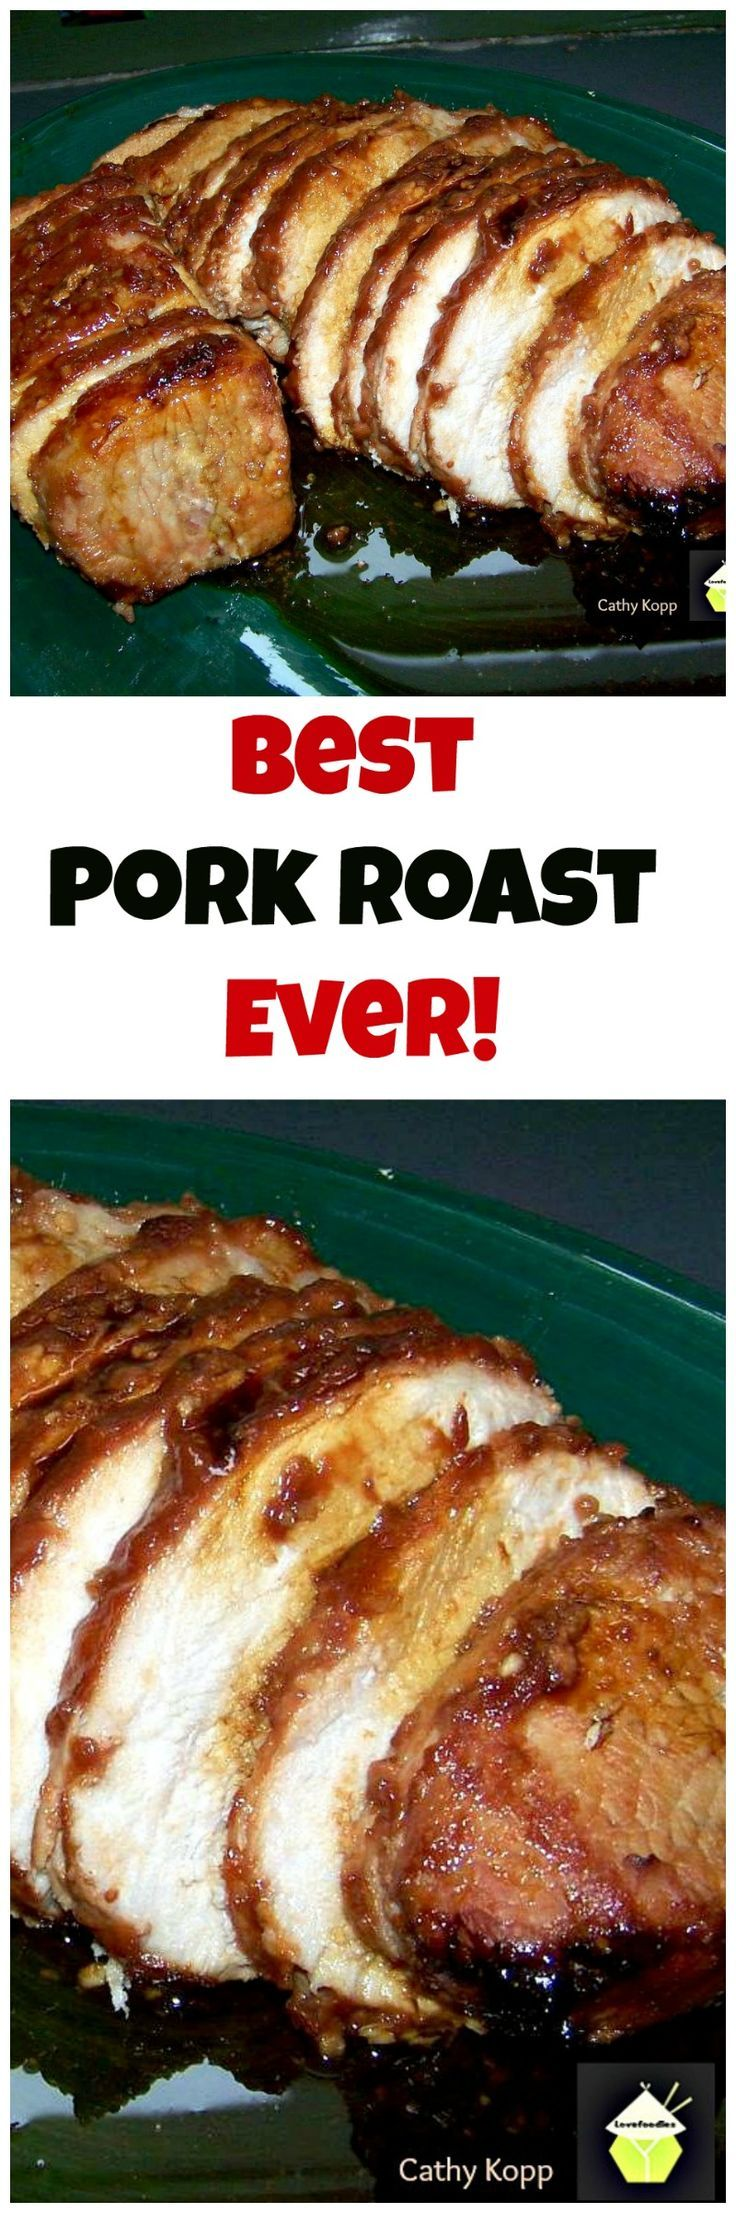 Best Pork Roast Ever! A lovely marinade which will give great flavor and keep your pork juicy. Great for the oven of grill.